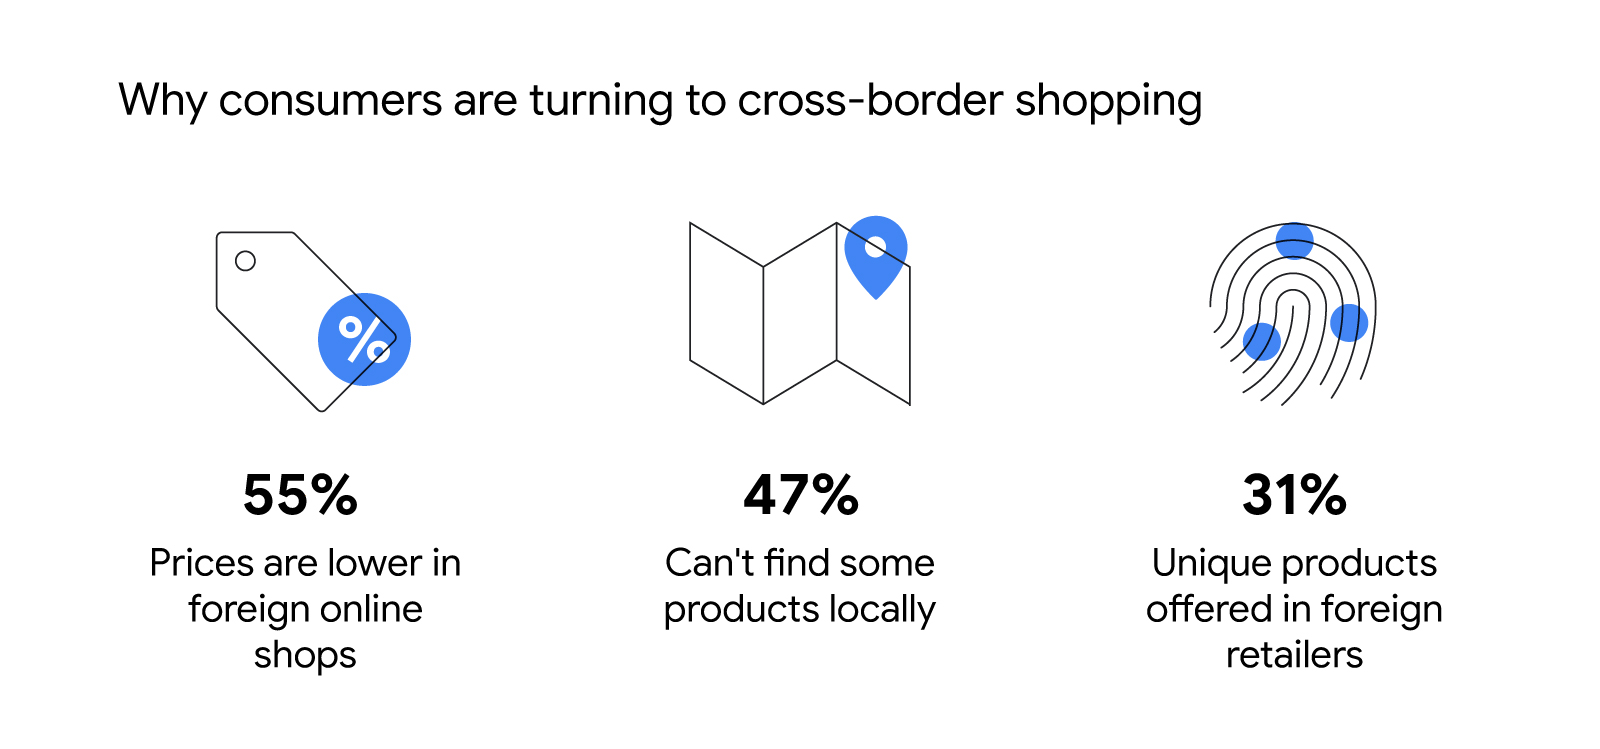 Why consumers are going cross-border and what they're buying